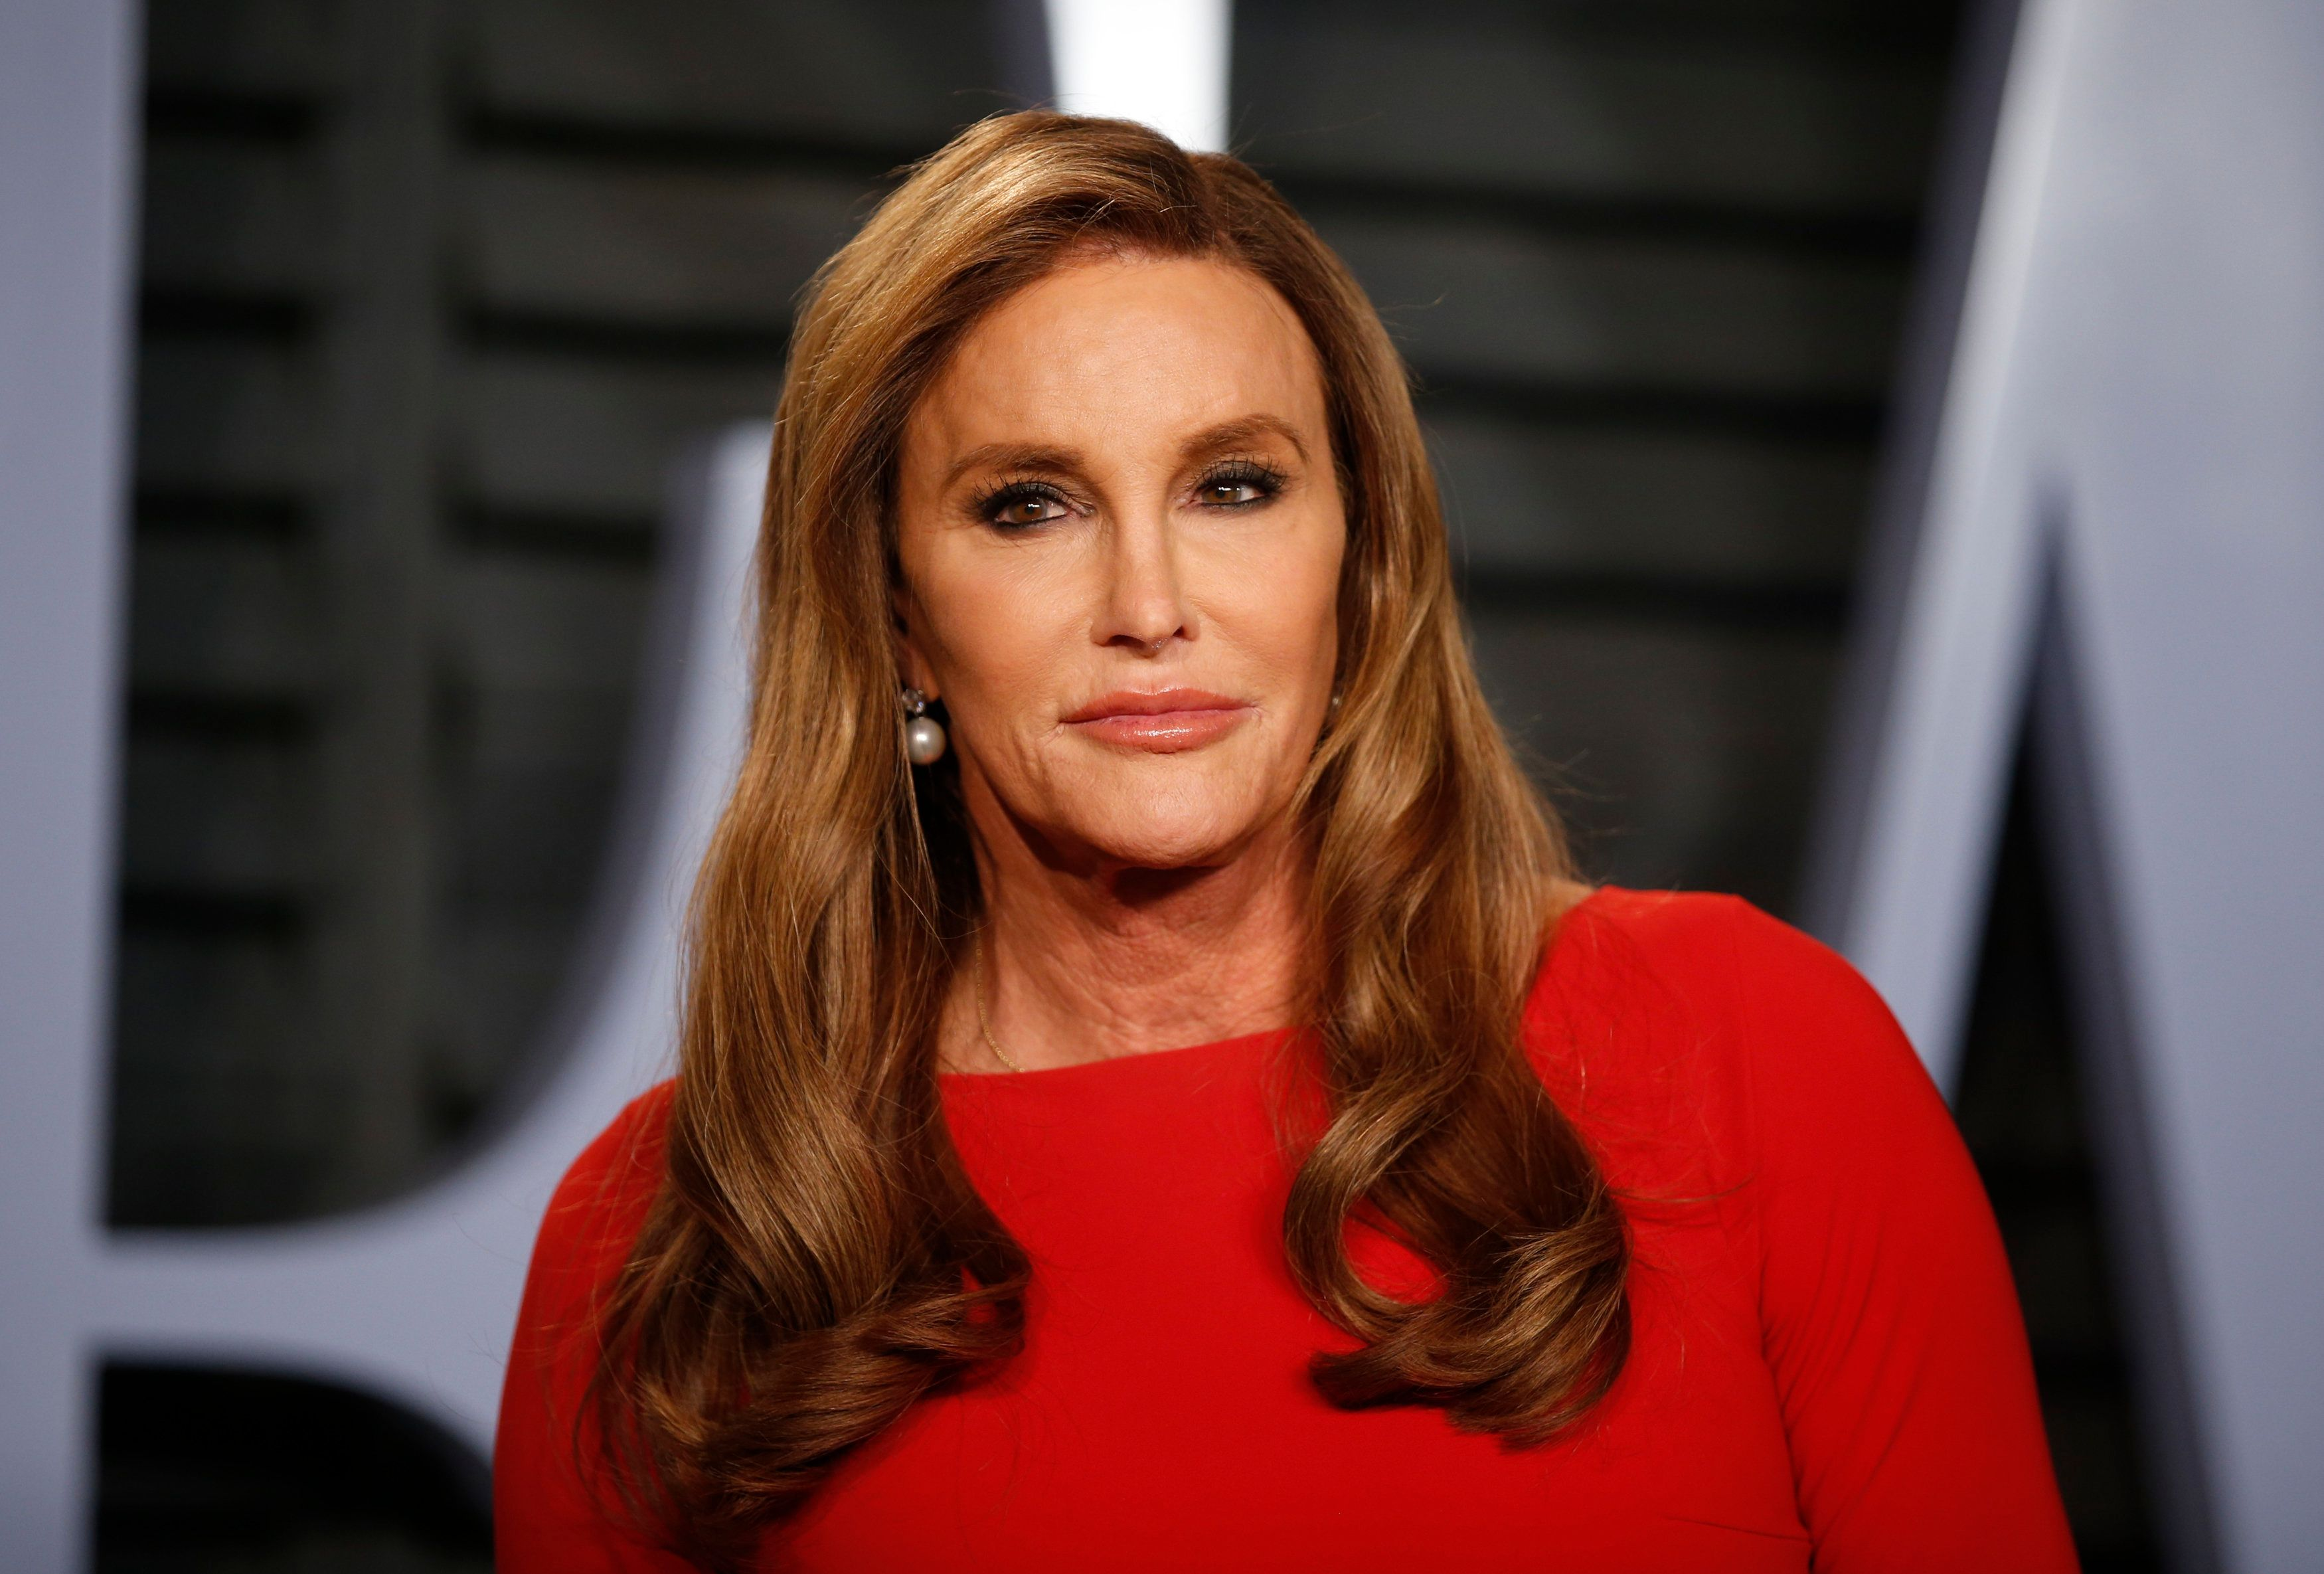 Caitlyn Jenner: Trump Is The 'Worst President We Have Ever Had' On LGBTQ